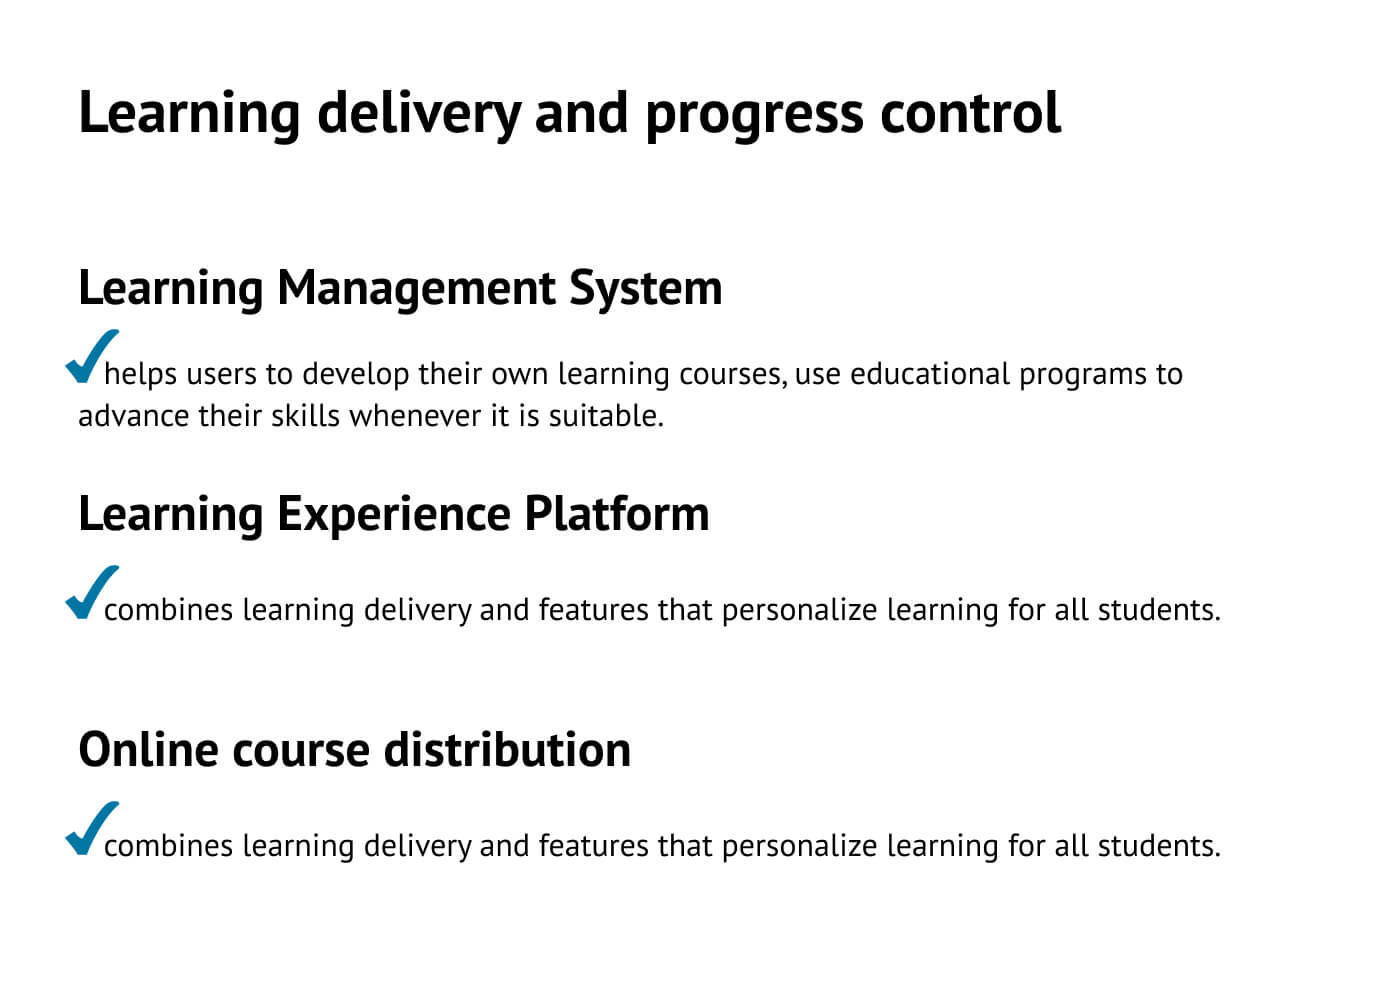 E-learning platforms for delivering education and monitoring progress